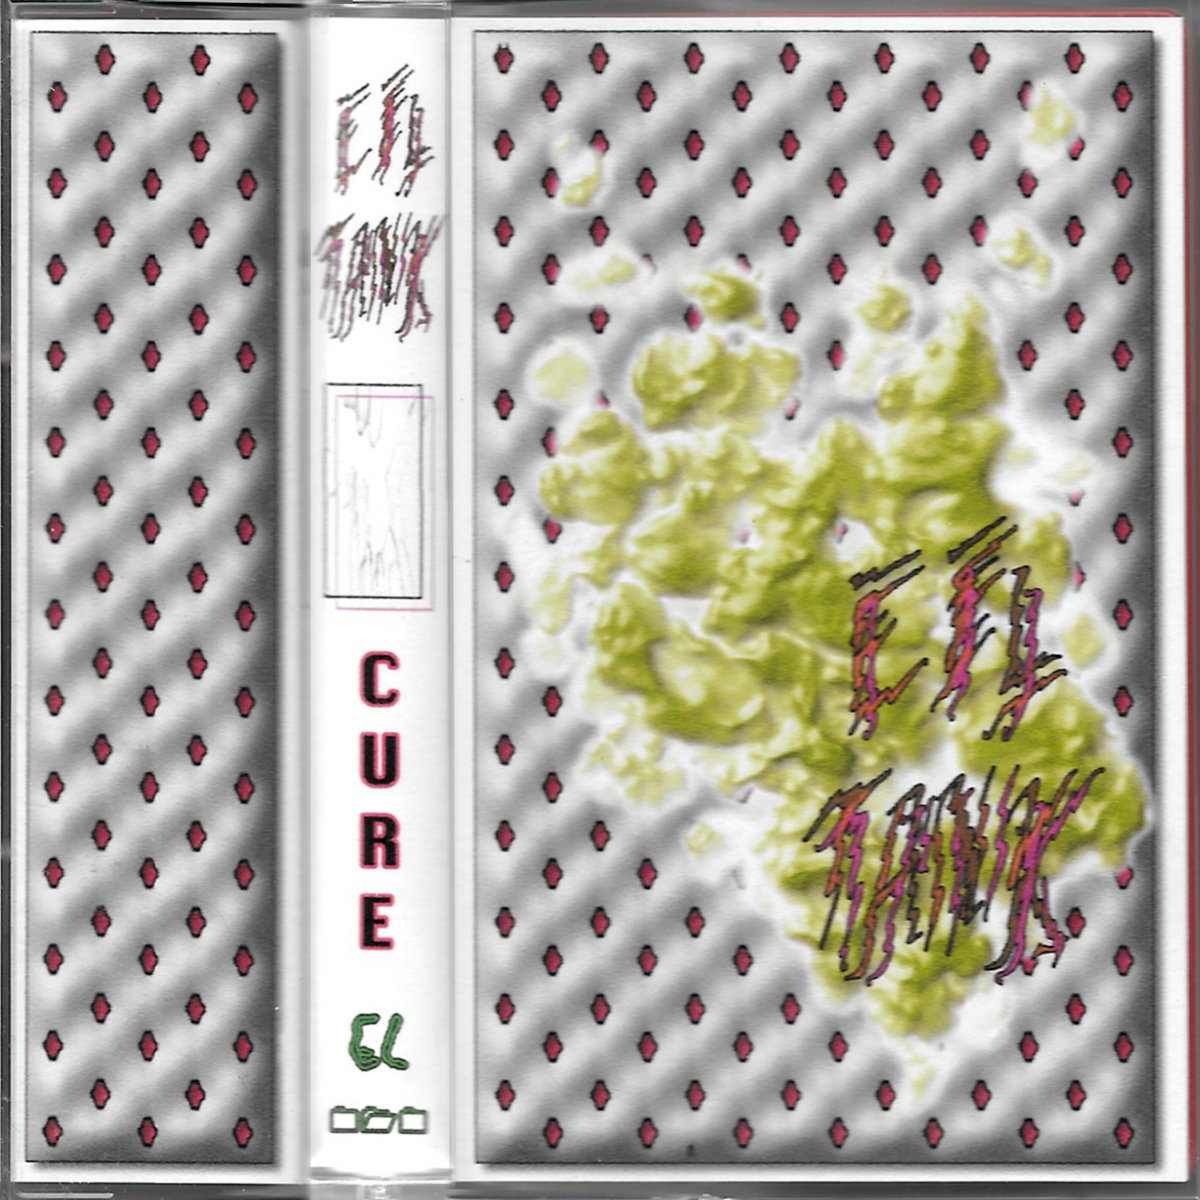 the cure full discography download